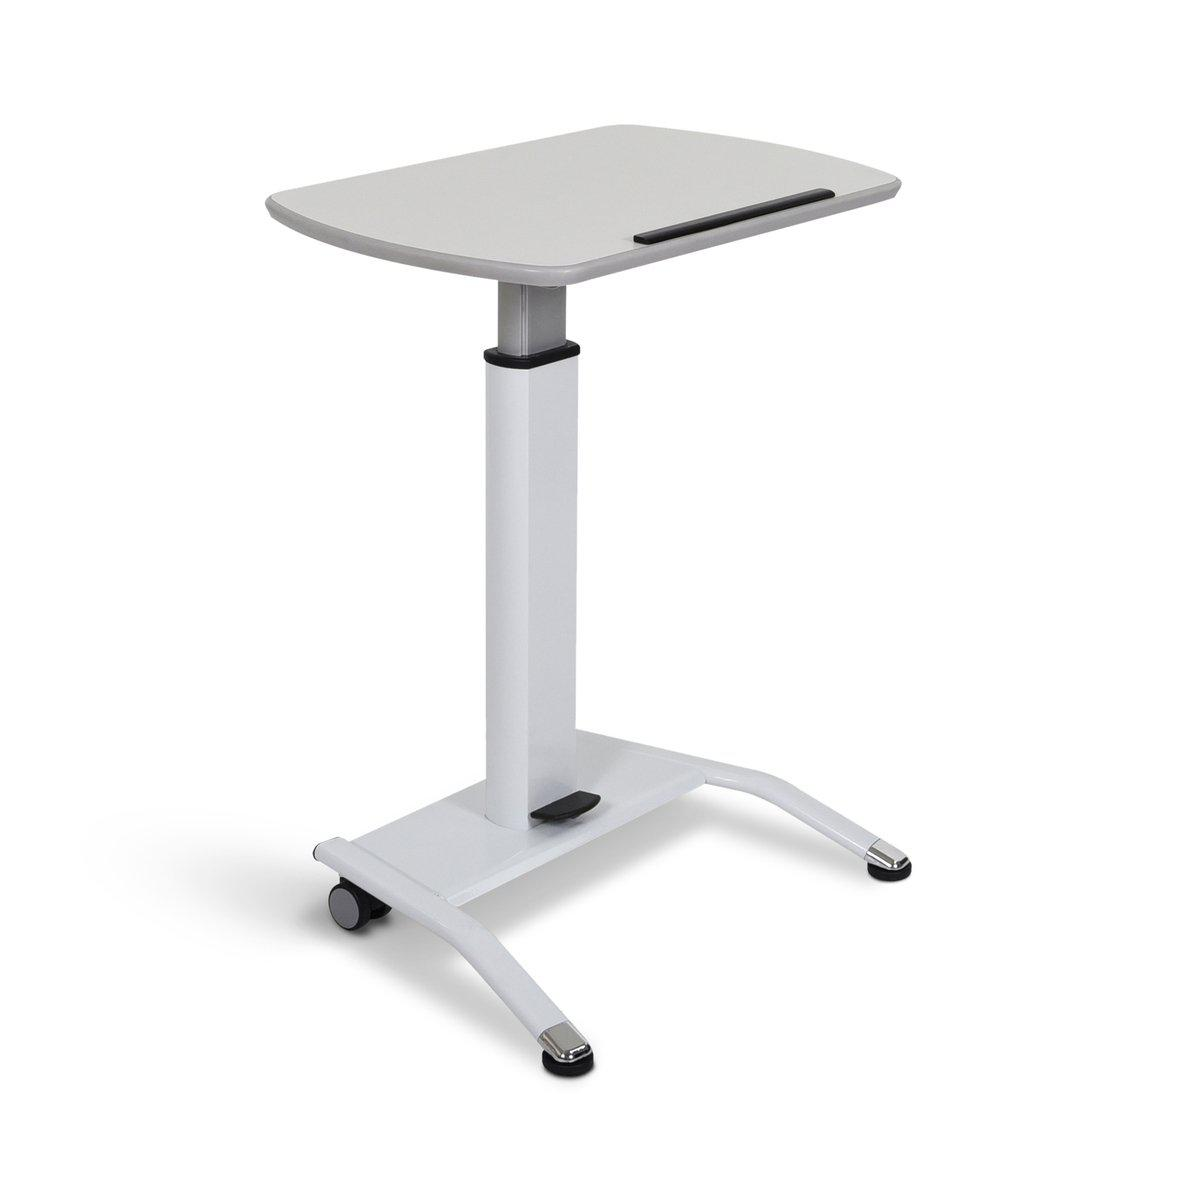 Pneumatic Adjustable-Height Lectern/Mobile Standing Desk, White Top